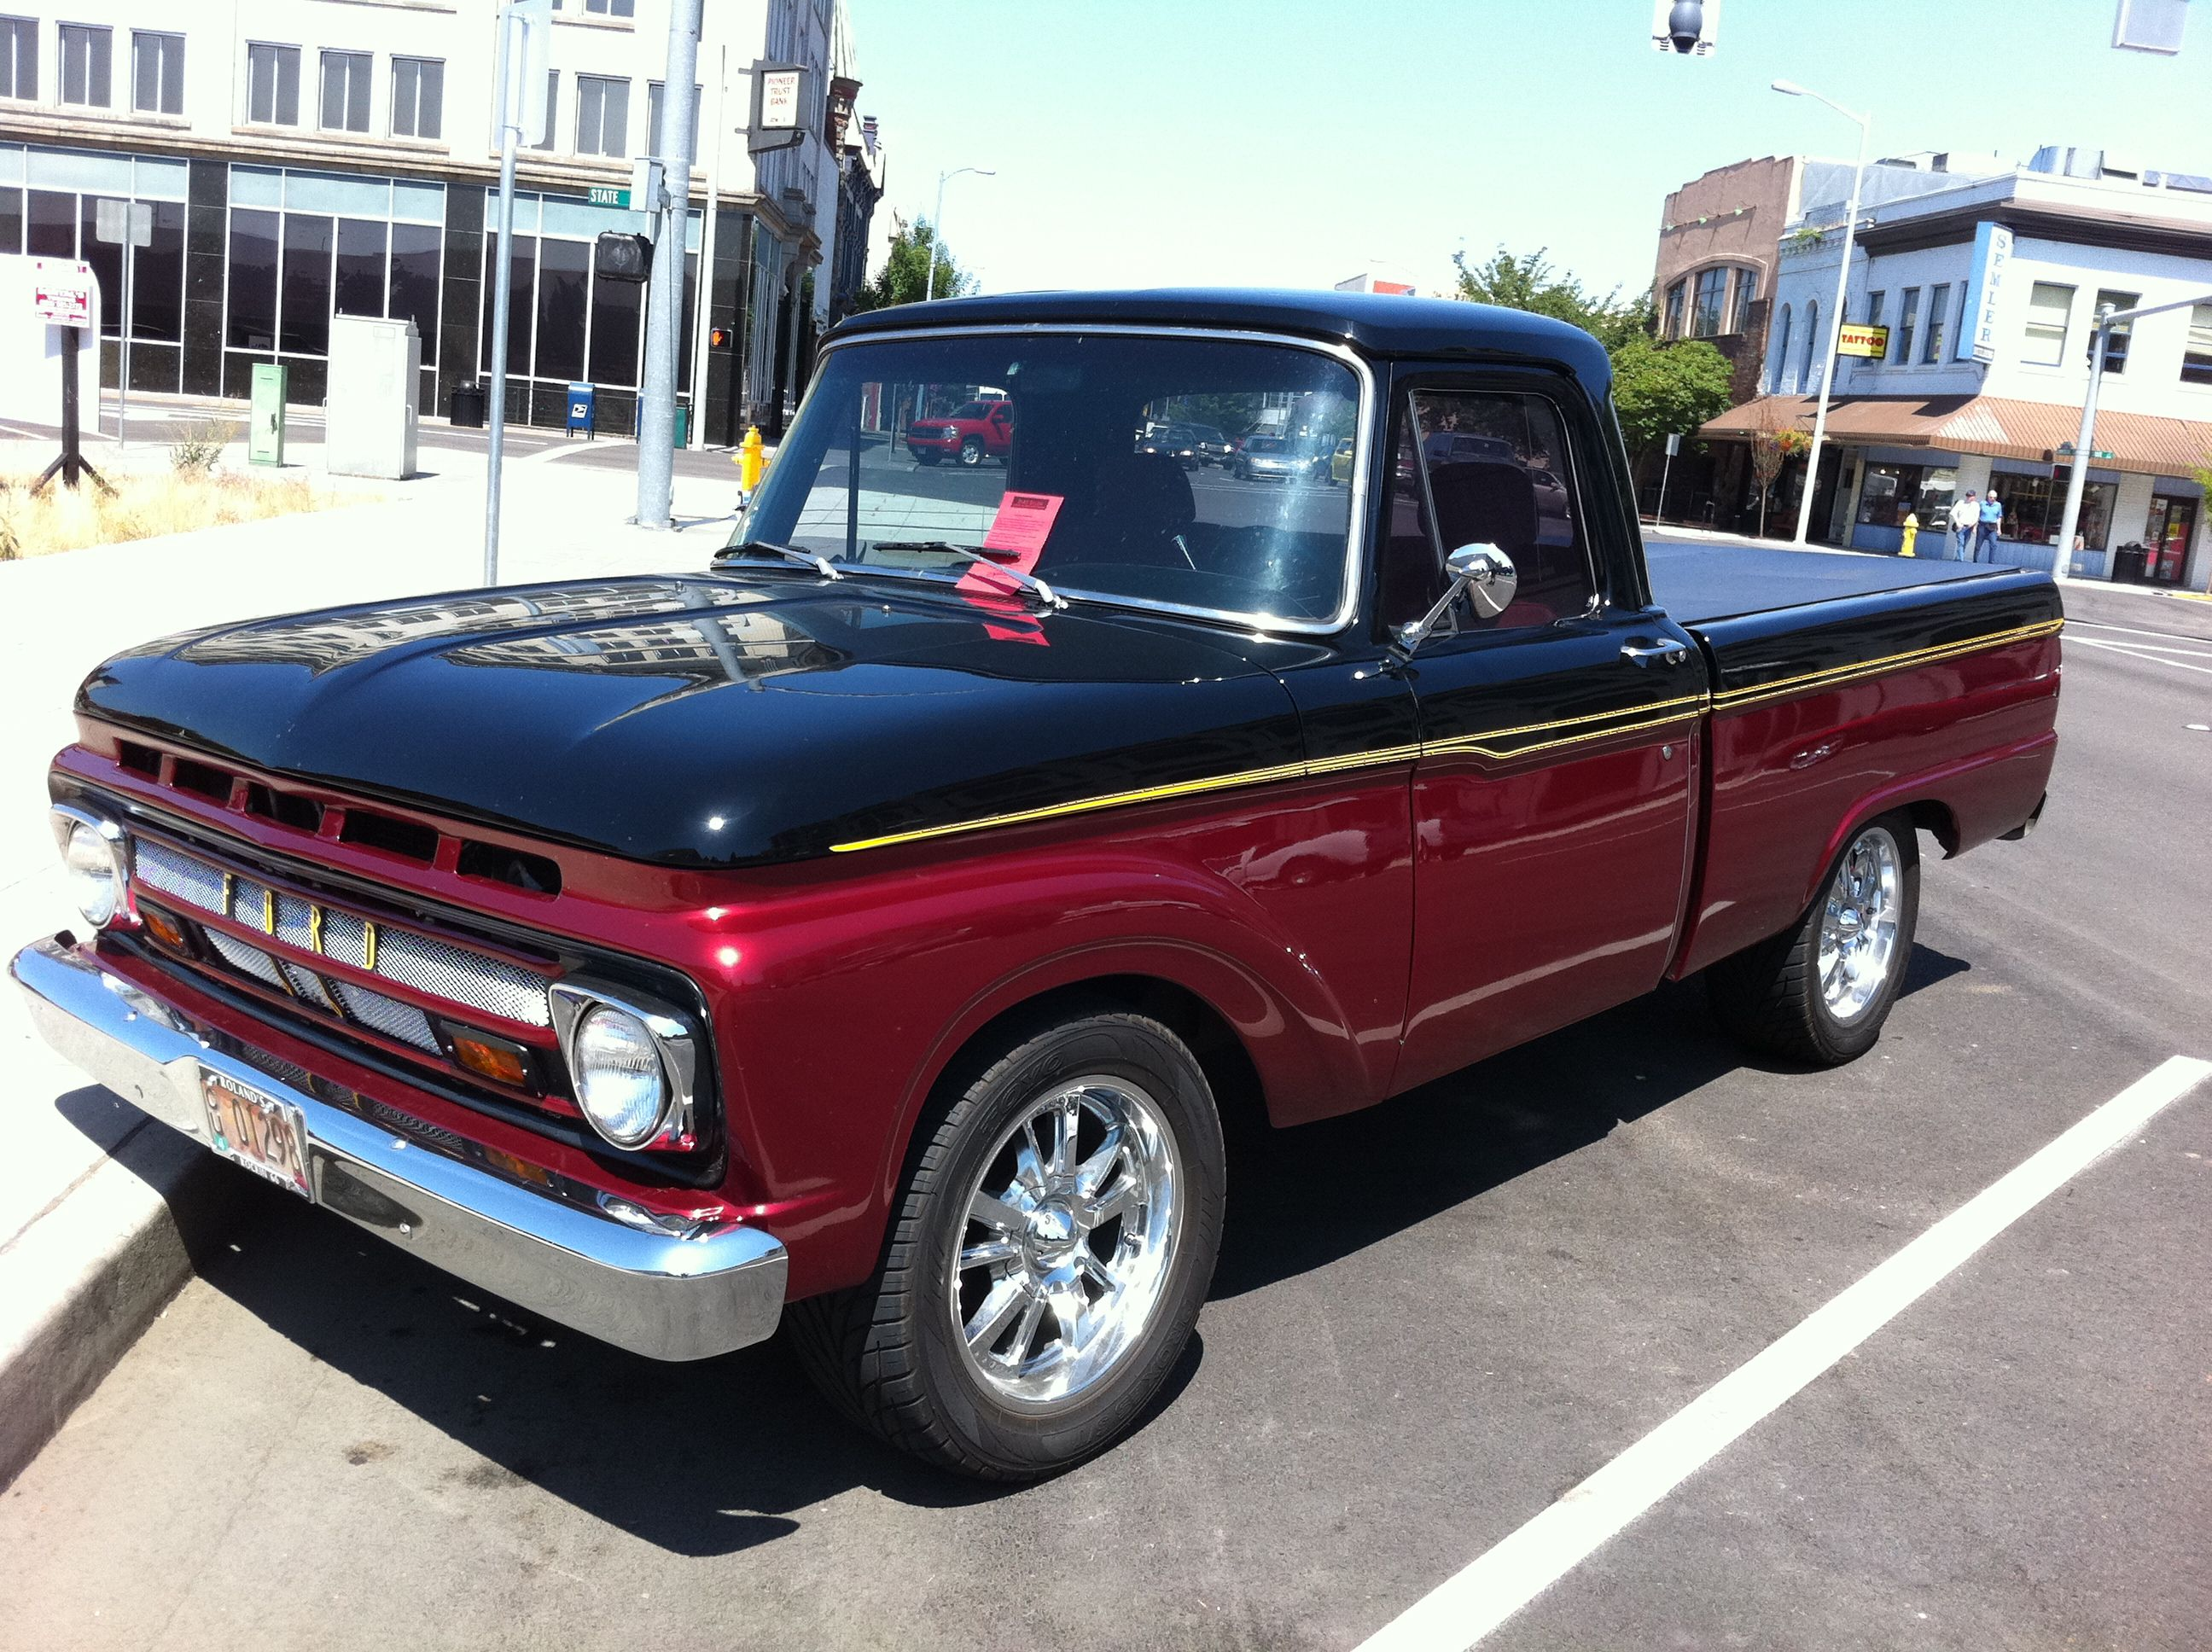 Vintage trucks | ... and 1-ton pickups, but my classic truck roots ...